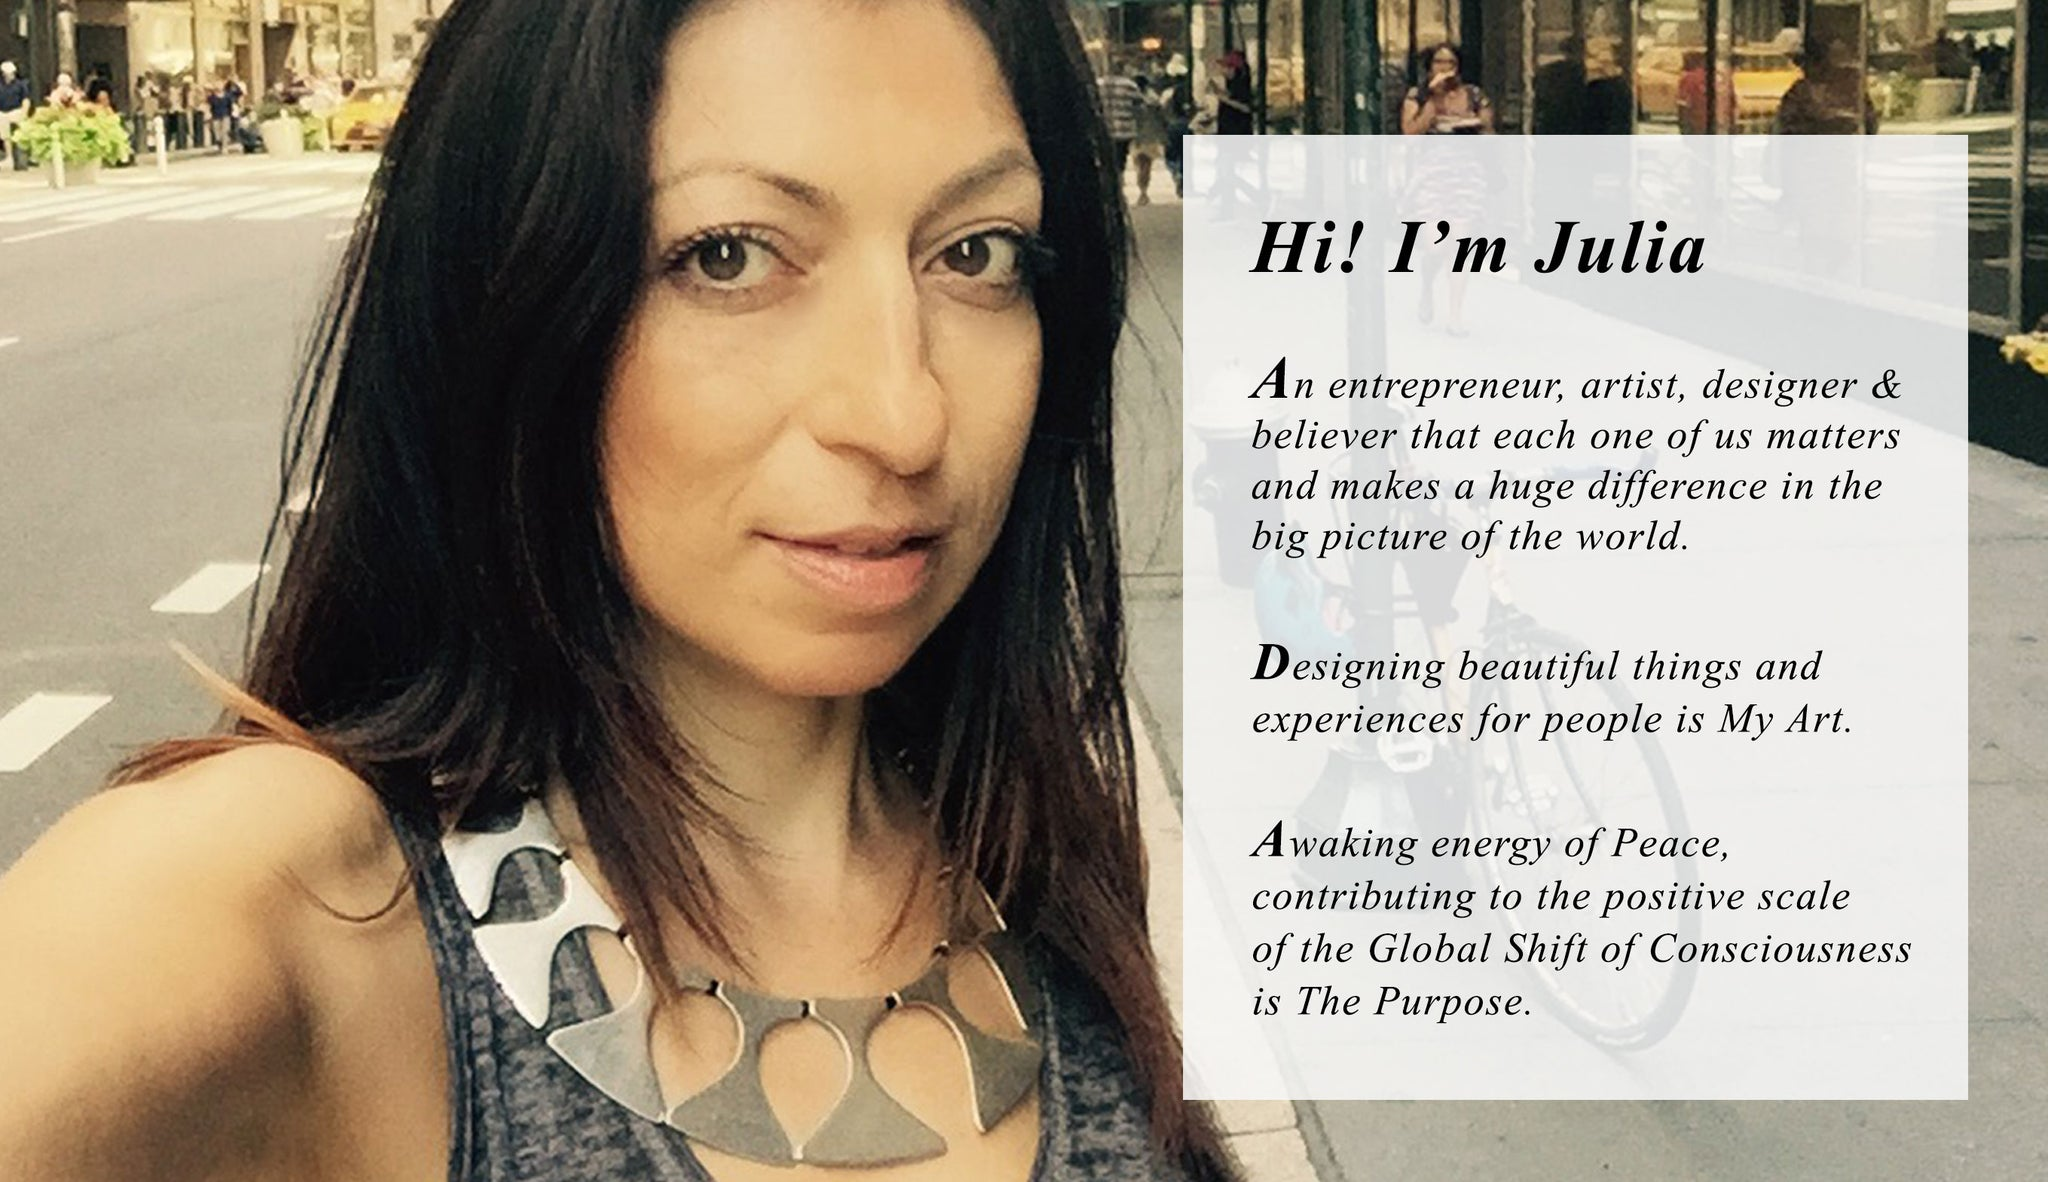 Hi! I'm Julia  Bernadsky, An entrepreneur, artist, designer &  believer that each one of us matters  and makes a huge difference in the  big picture of the world.  Designing beautiful things and  experiences for people is my Art  Awaking energy of Peace, contributing  to the positive scale of the Global Shift of  Consciousness is the purpose.